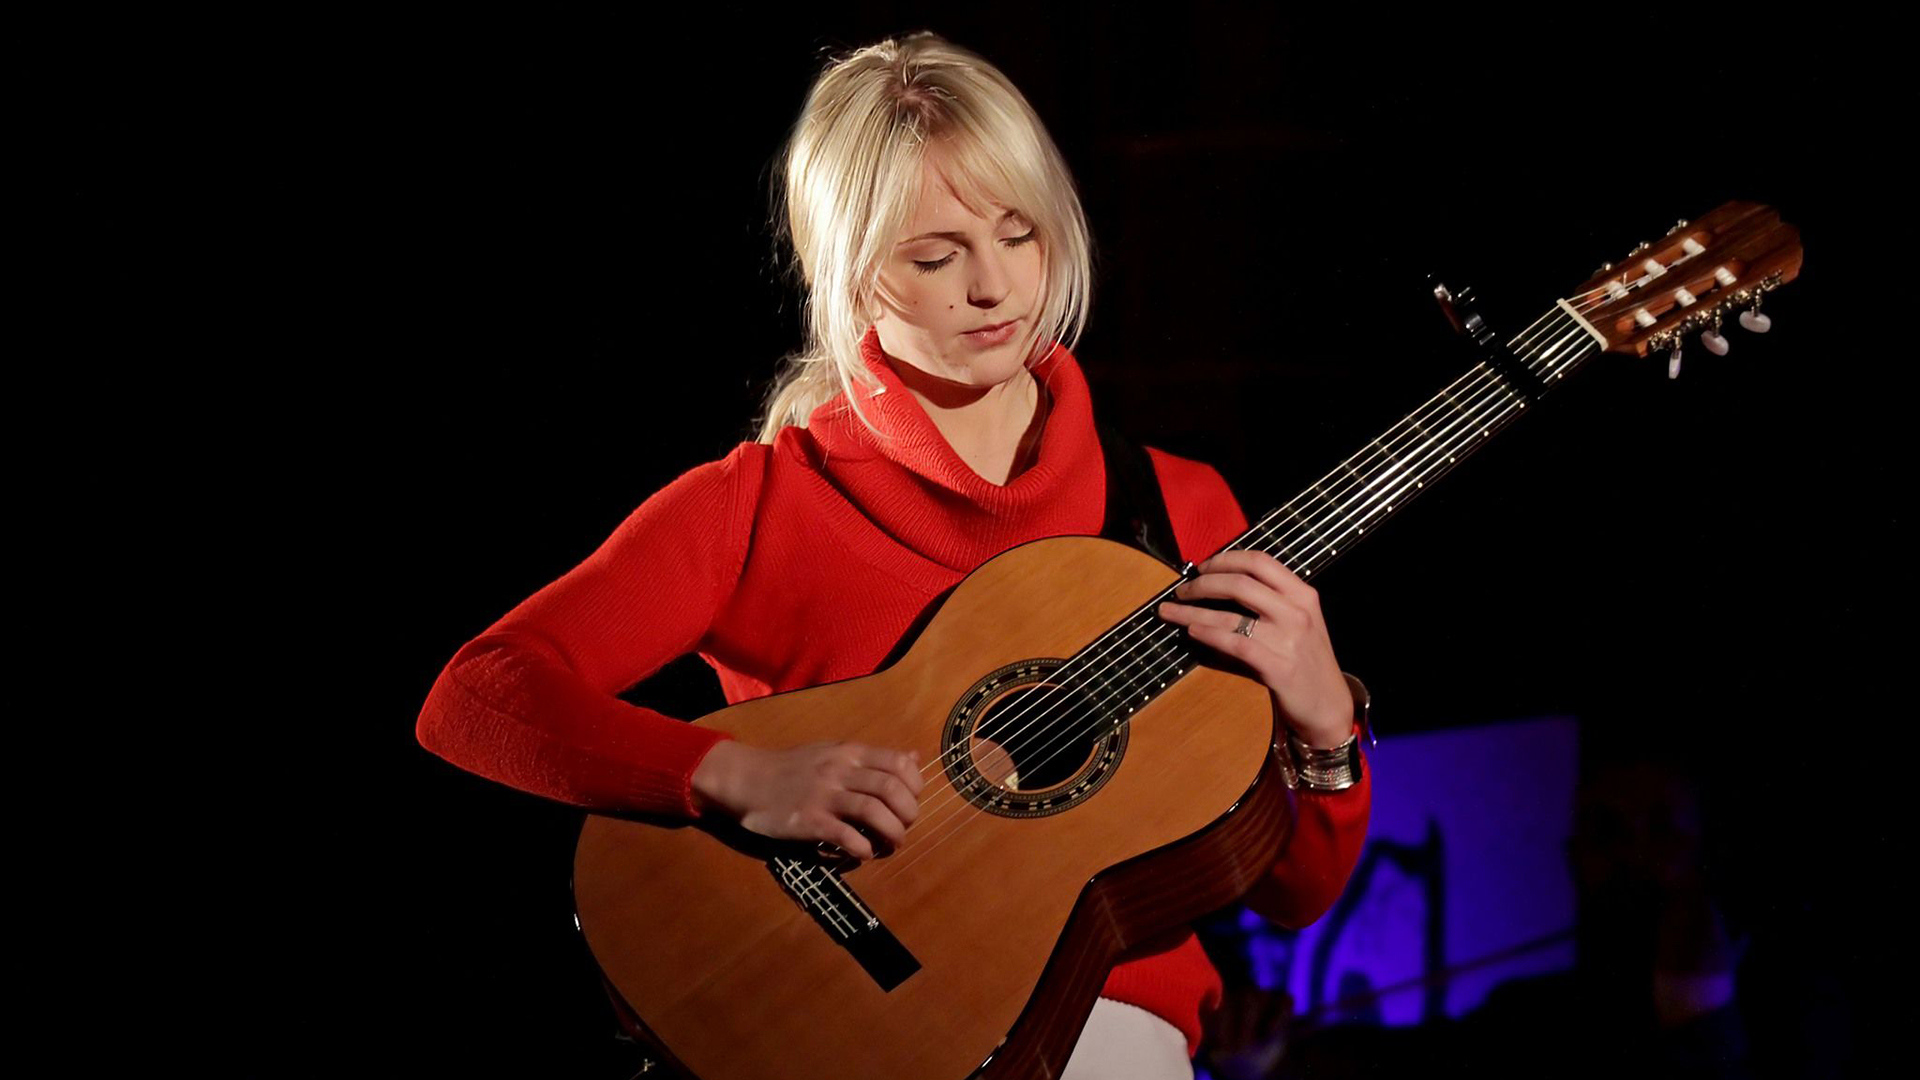 Devil's Spoke av Laura Marling